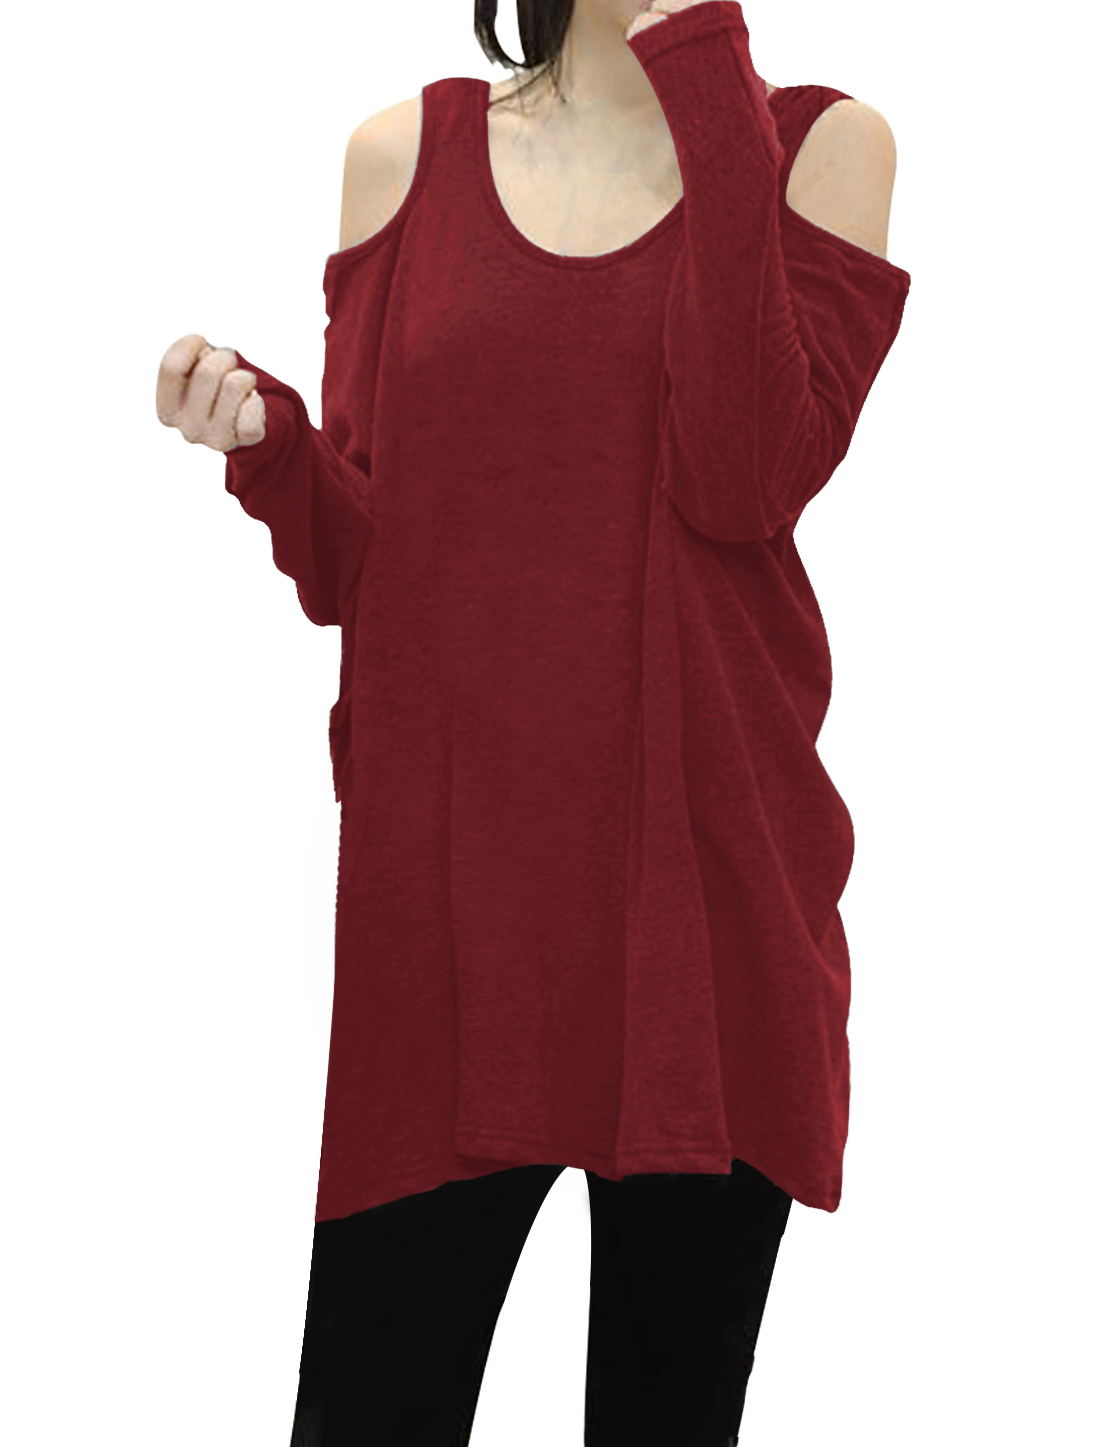 Ladies Scoop Neck Cut Out Shoulder Oversized Tunic Top Red S